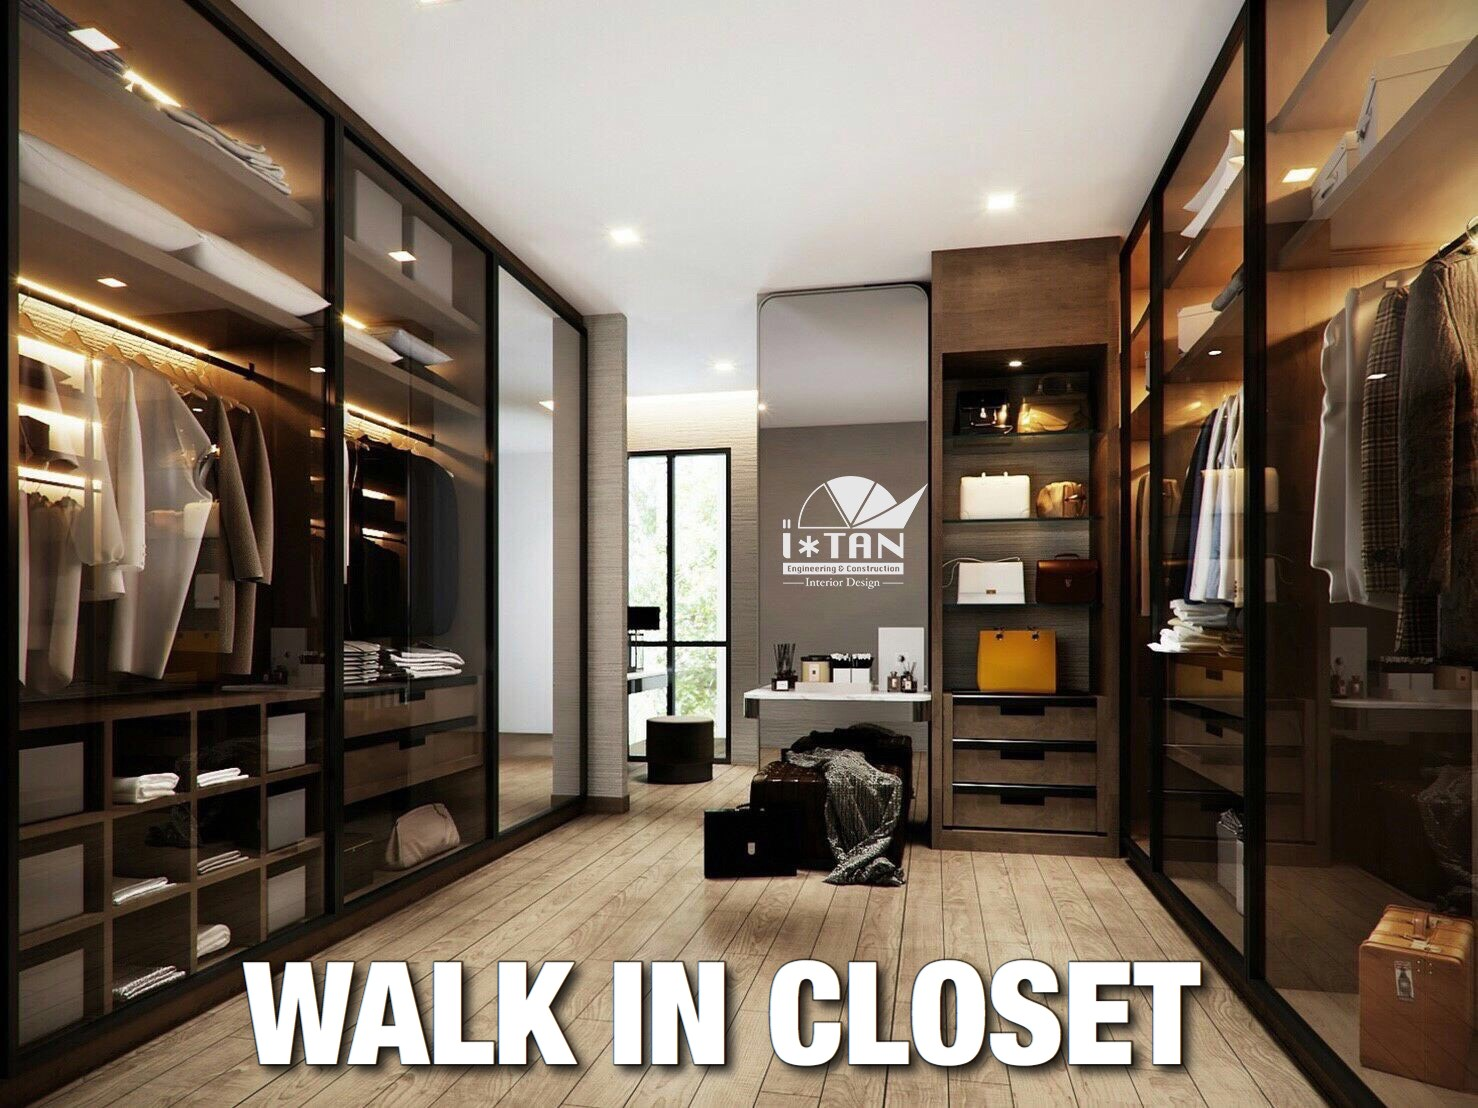 interior#Walkincloset